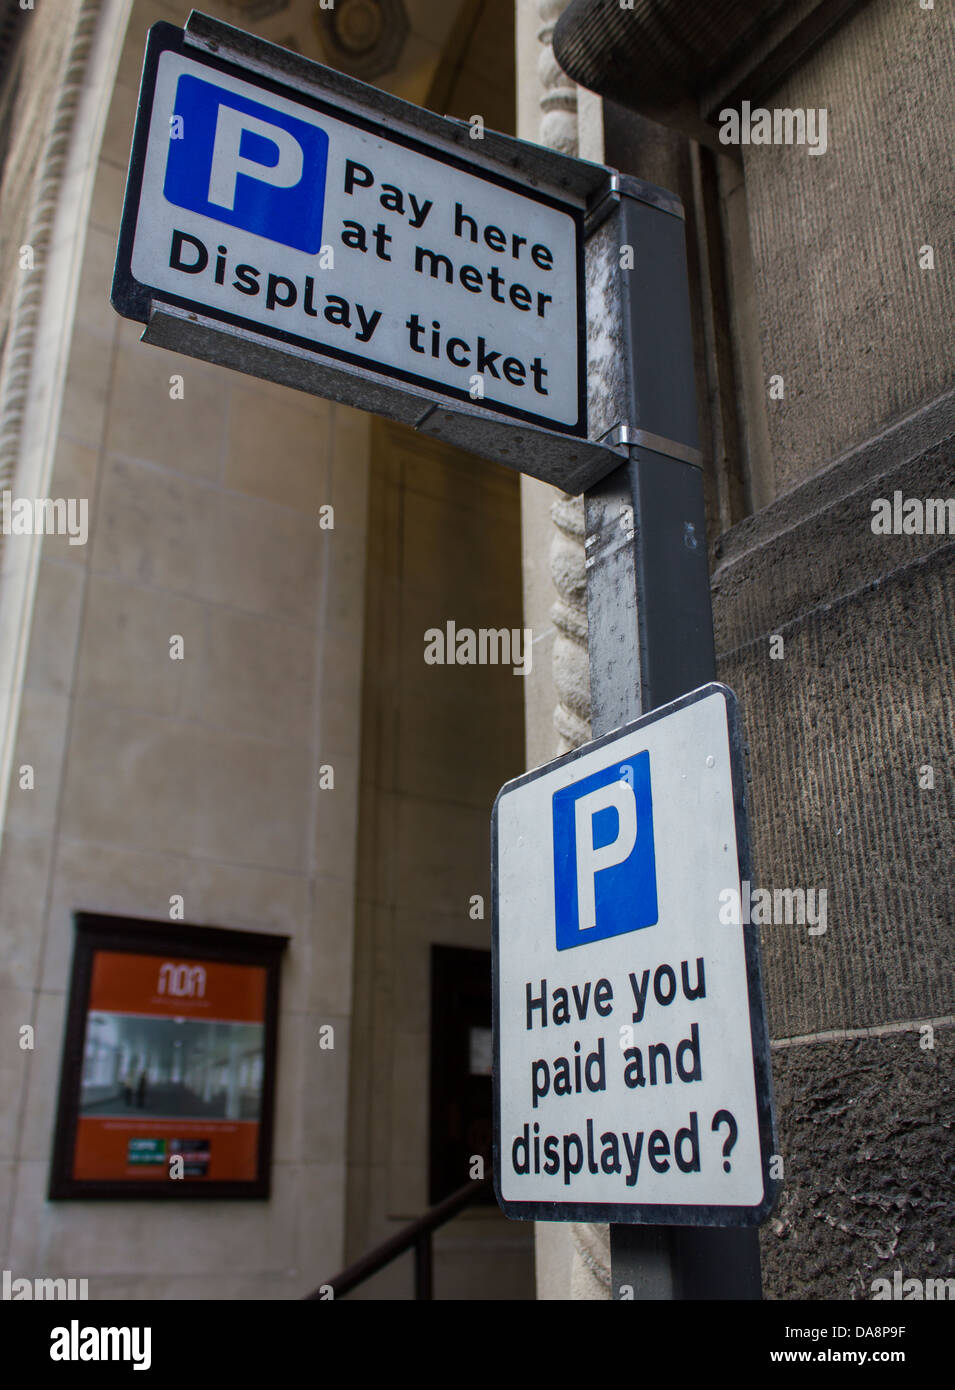 Pay and Display meter, Liverpool, England - Stock Image